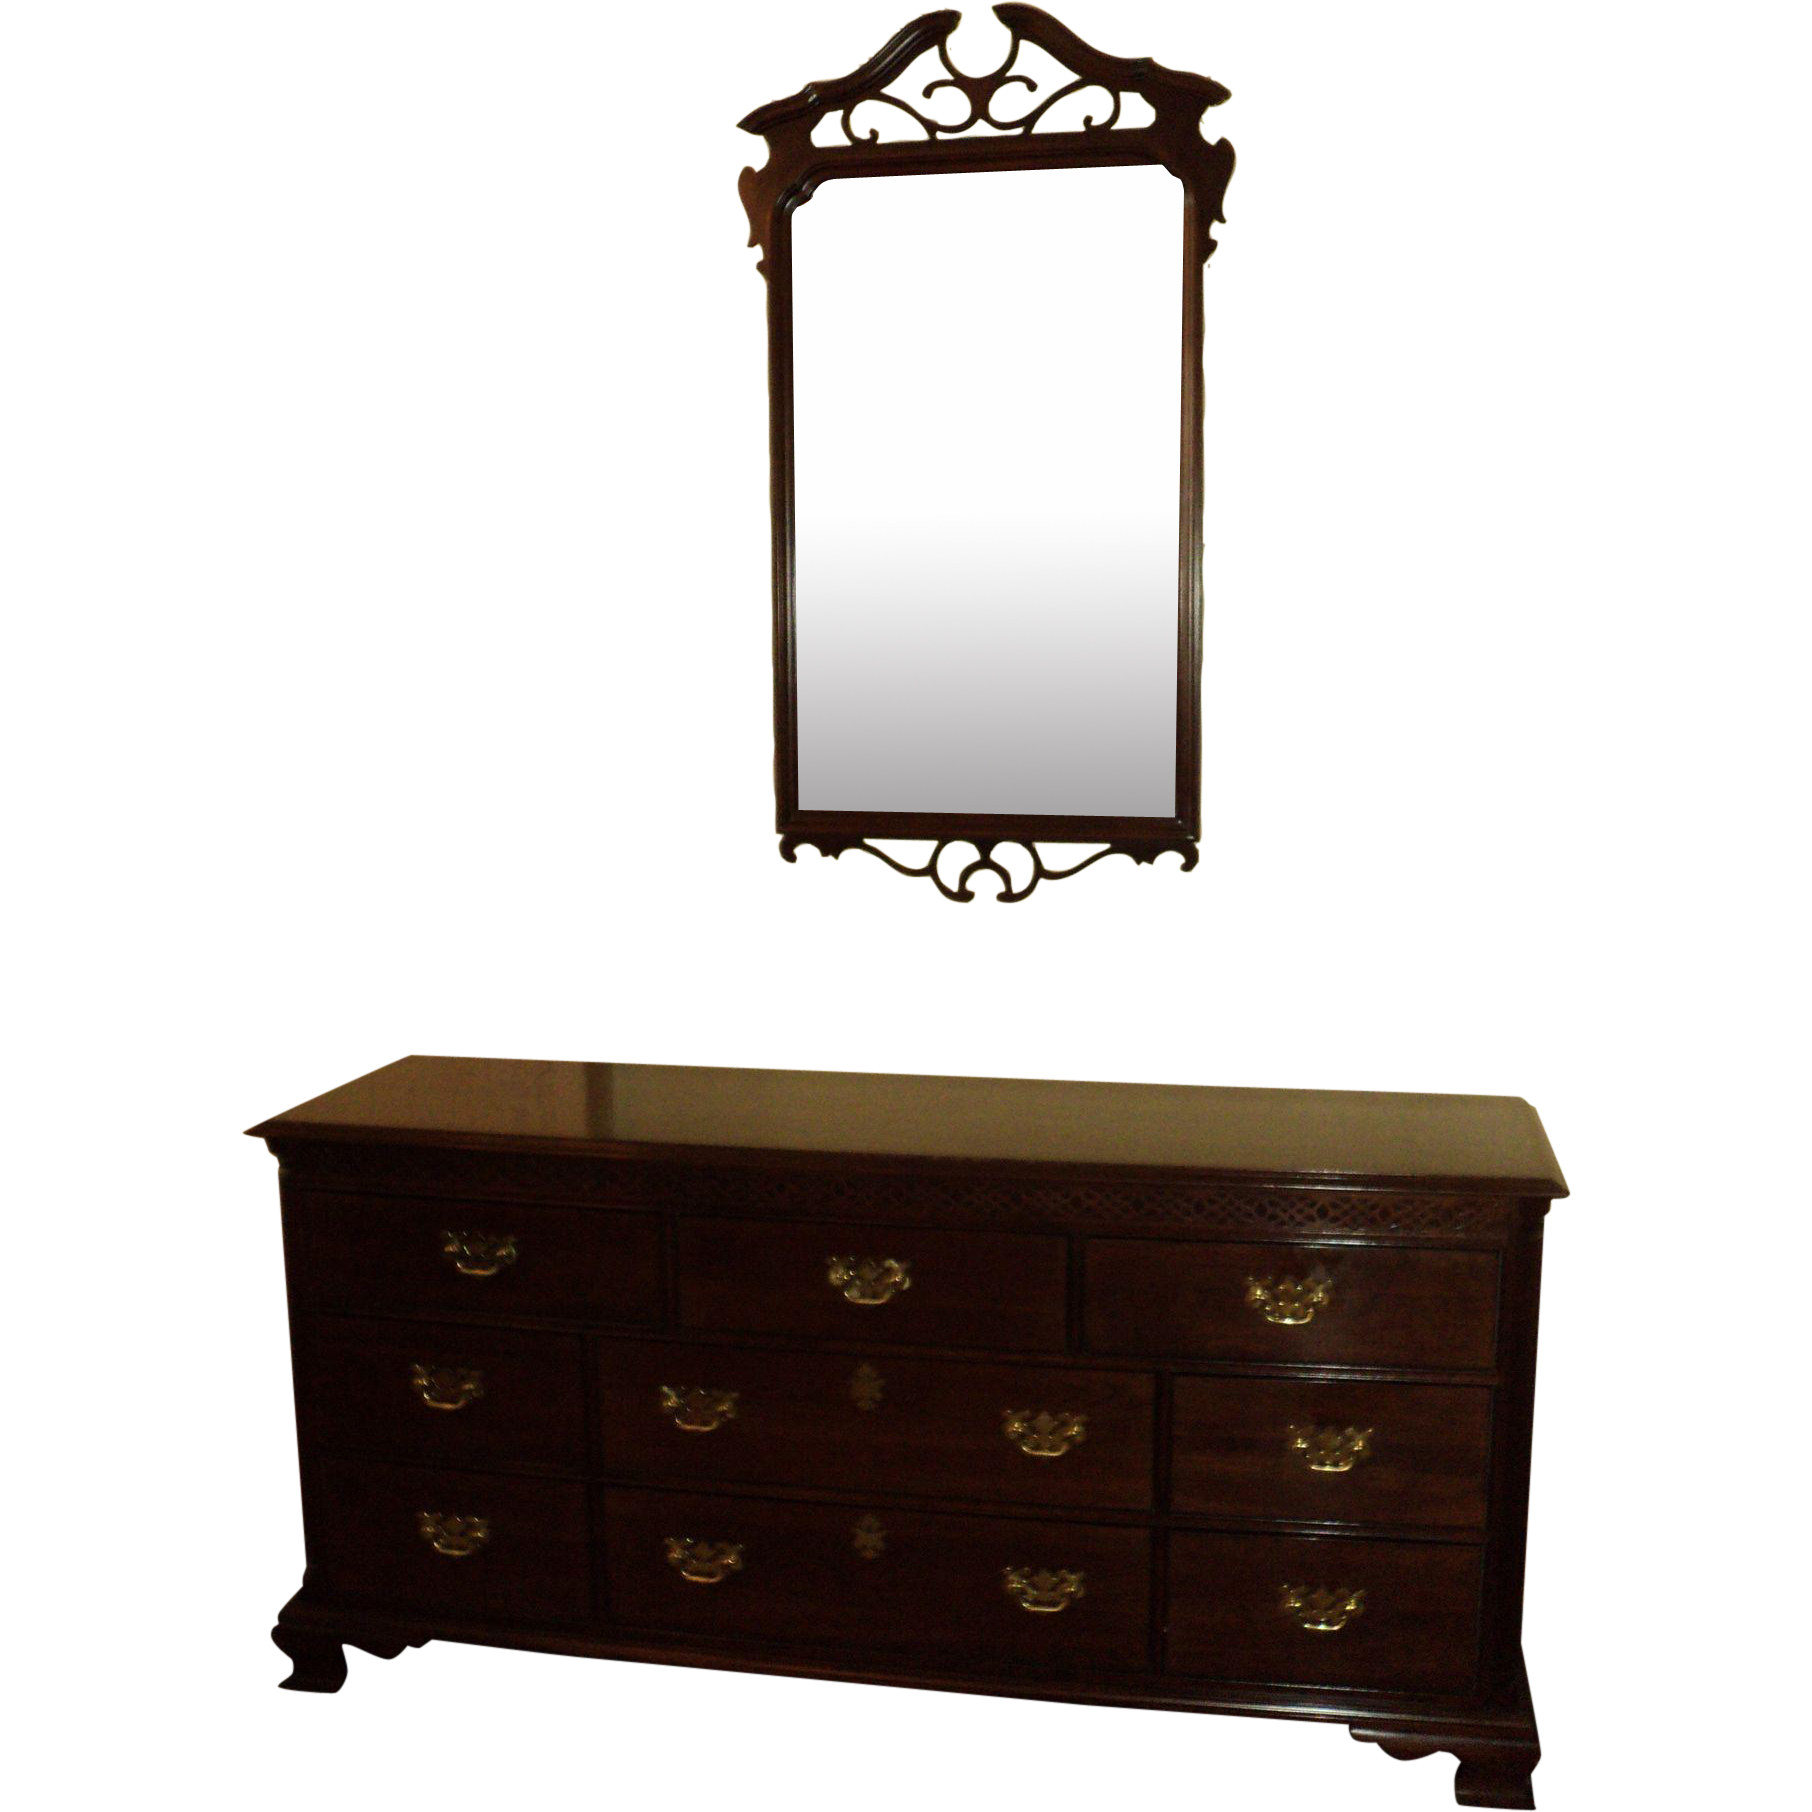 Chippendale Style Cherry Dresser w. Mirror, Knob Creek by Ethan Allen